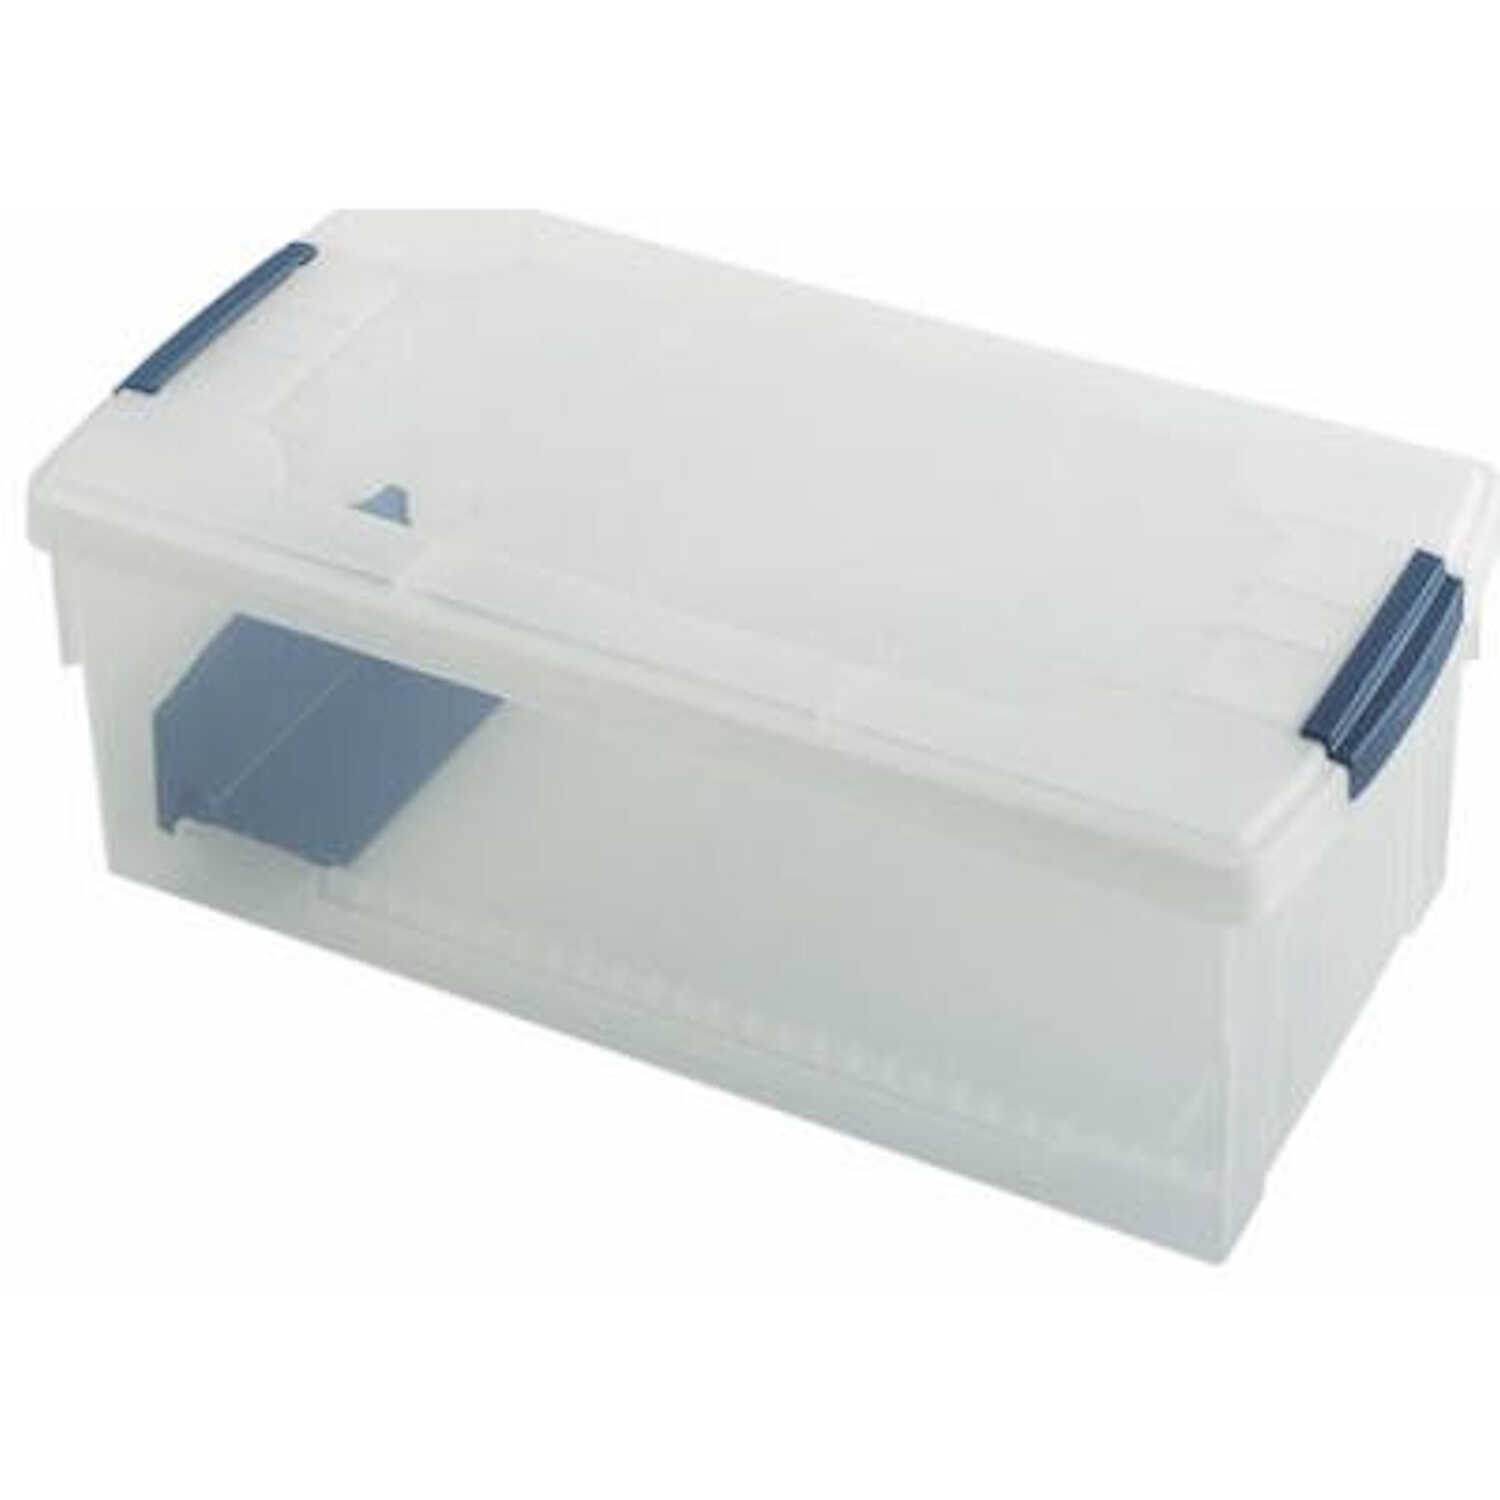 Rubbermaid  Photo and Media  6-3/4 in. H x 9 in. W x 18.3 in. D Stackable Storage Box